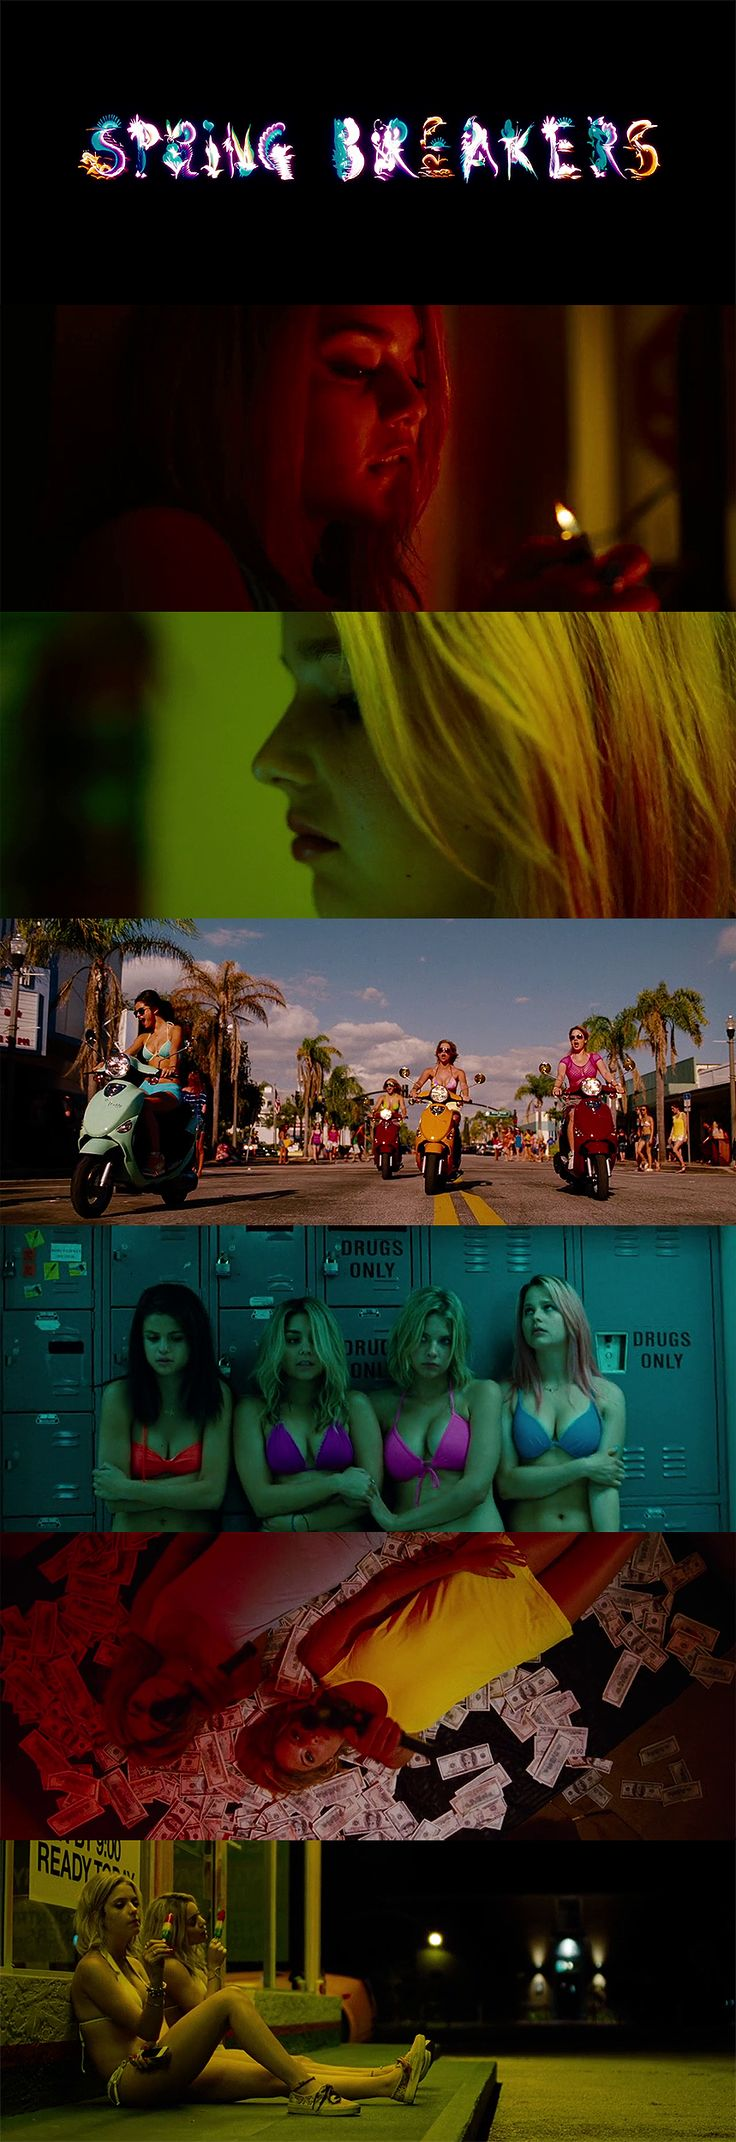 Spring Breakers (2012) cinematography : Benoît Debie